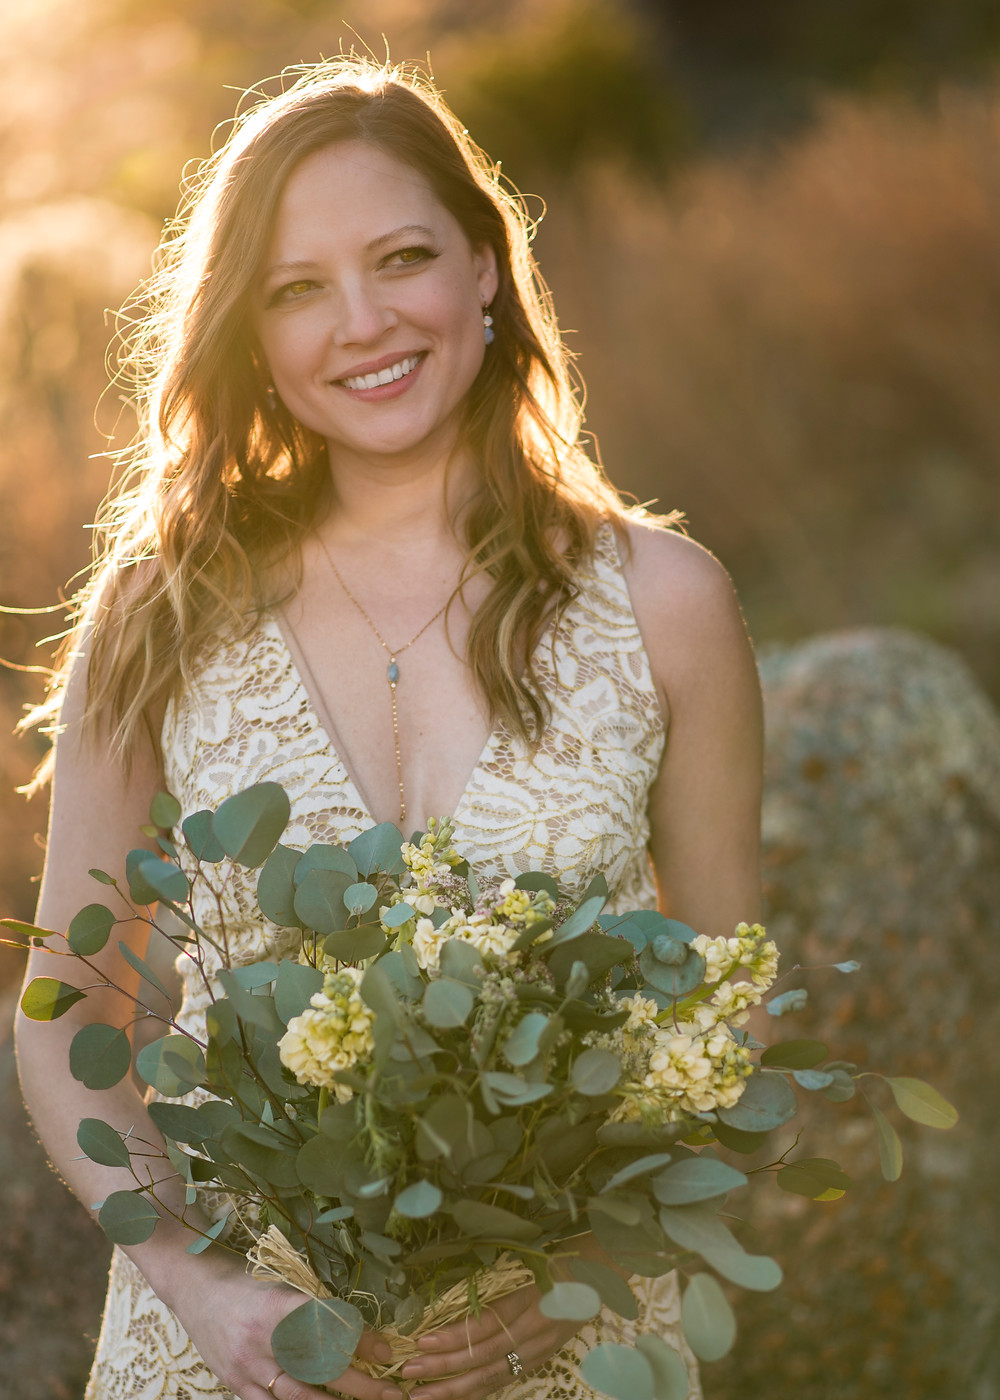 bride smiling holding bouquet of greenery and white flowers. The sun is setting behind her giving her hair a beautiful back lit halo. Bride is at enchanted rock for her elopement